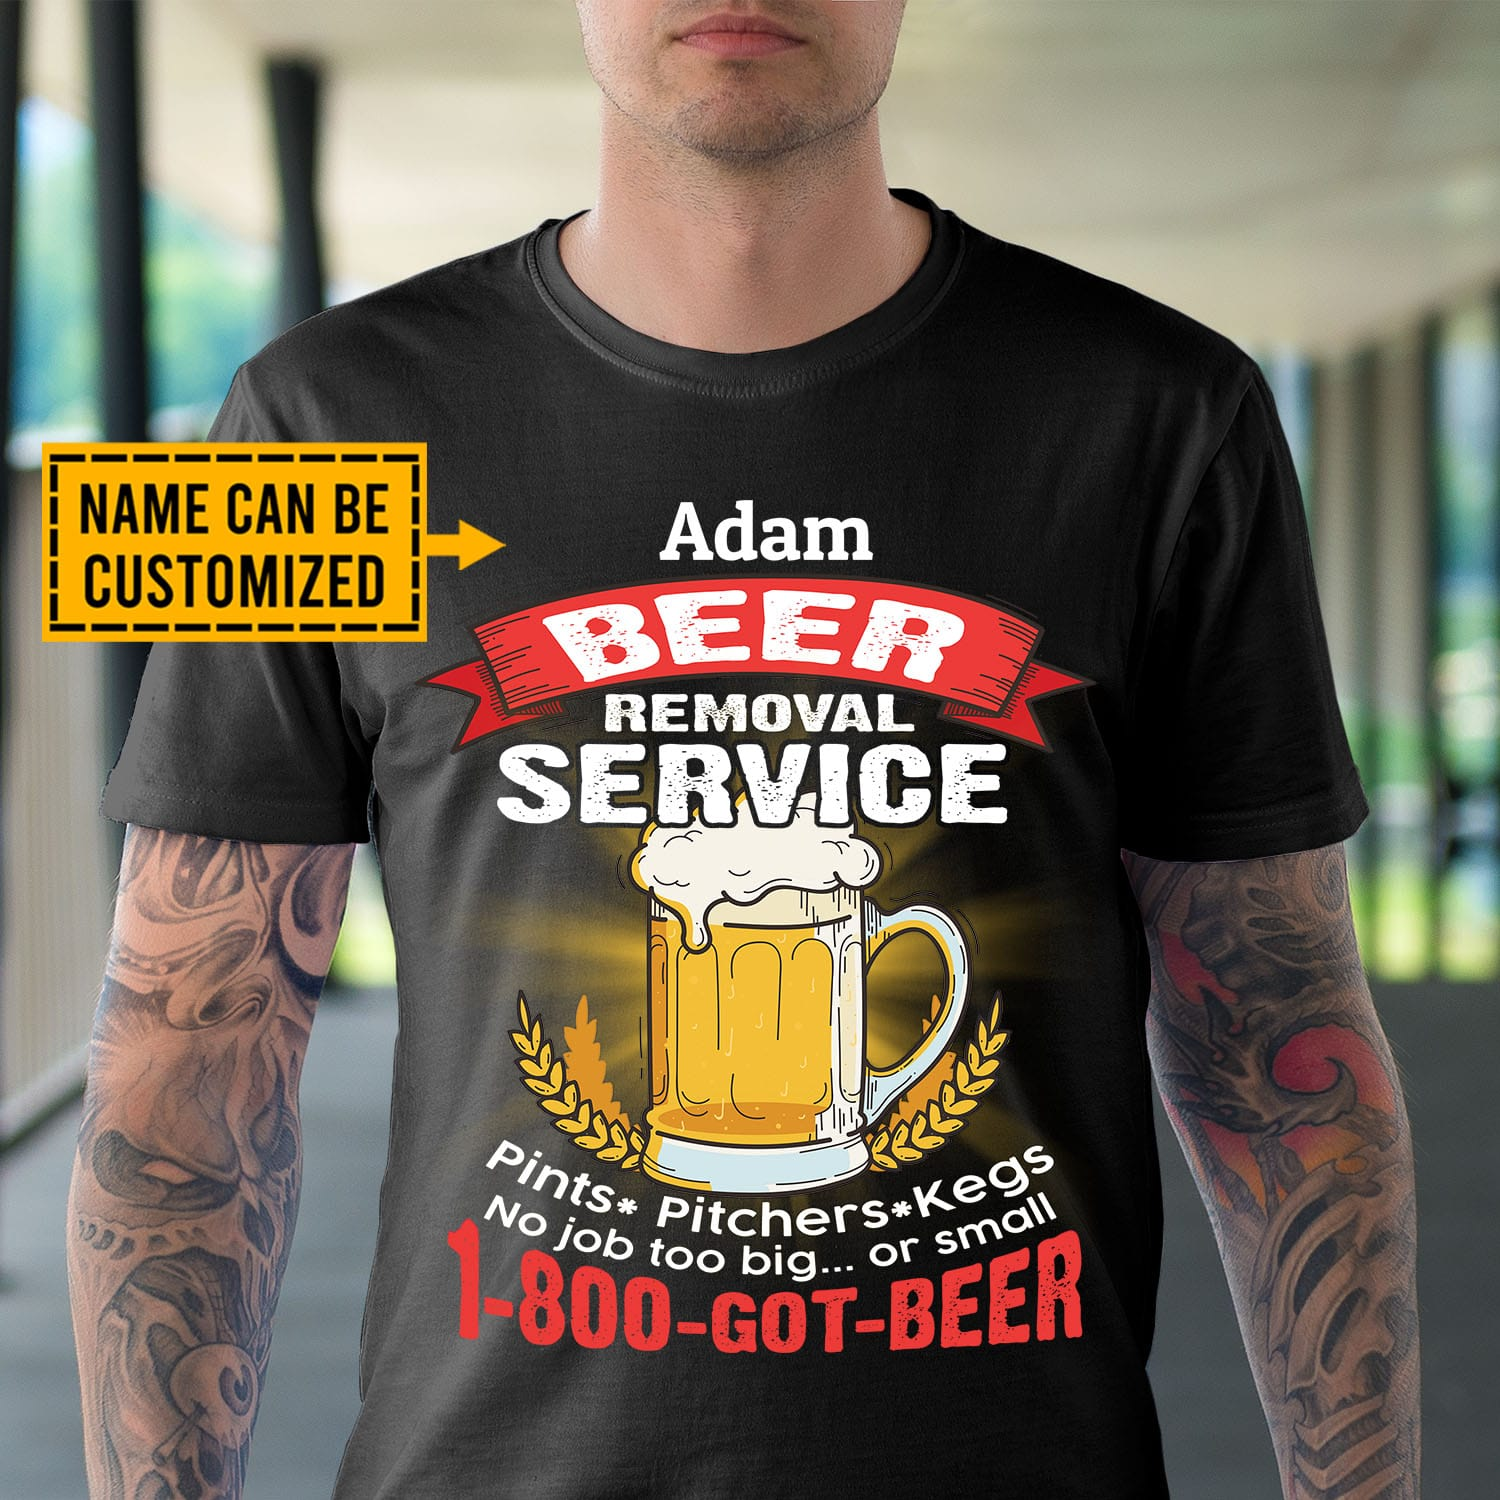 Personalized Beer Removal Service Funny Beer Shirts for Men T-shirt